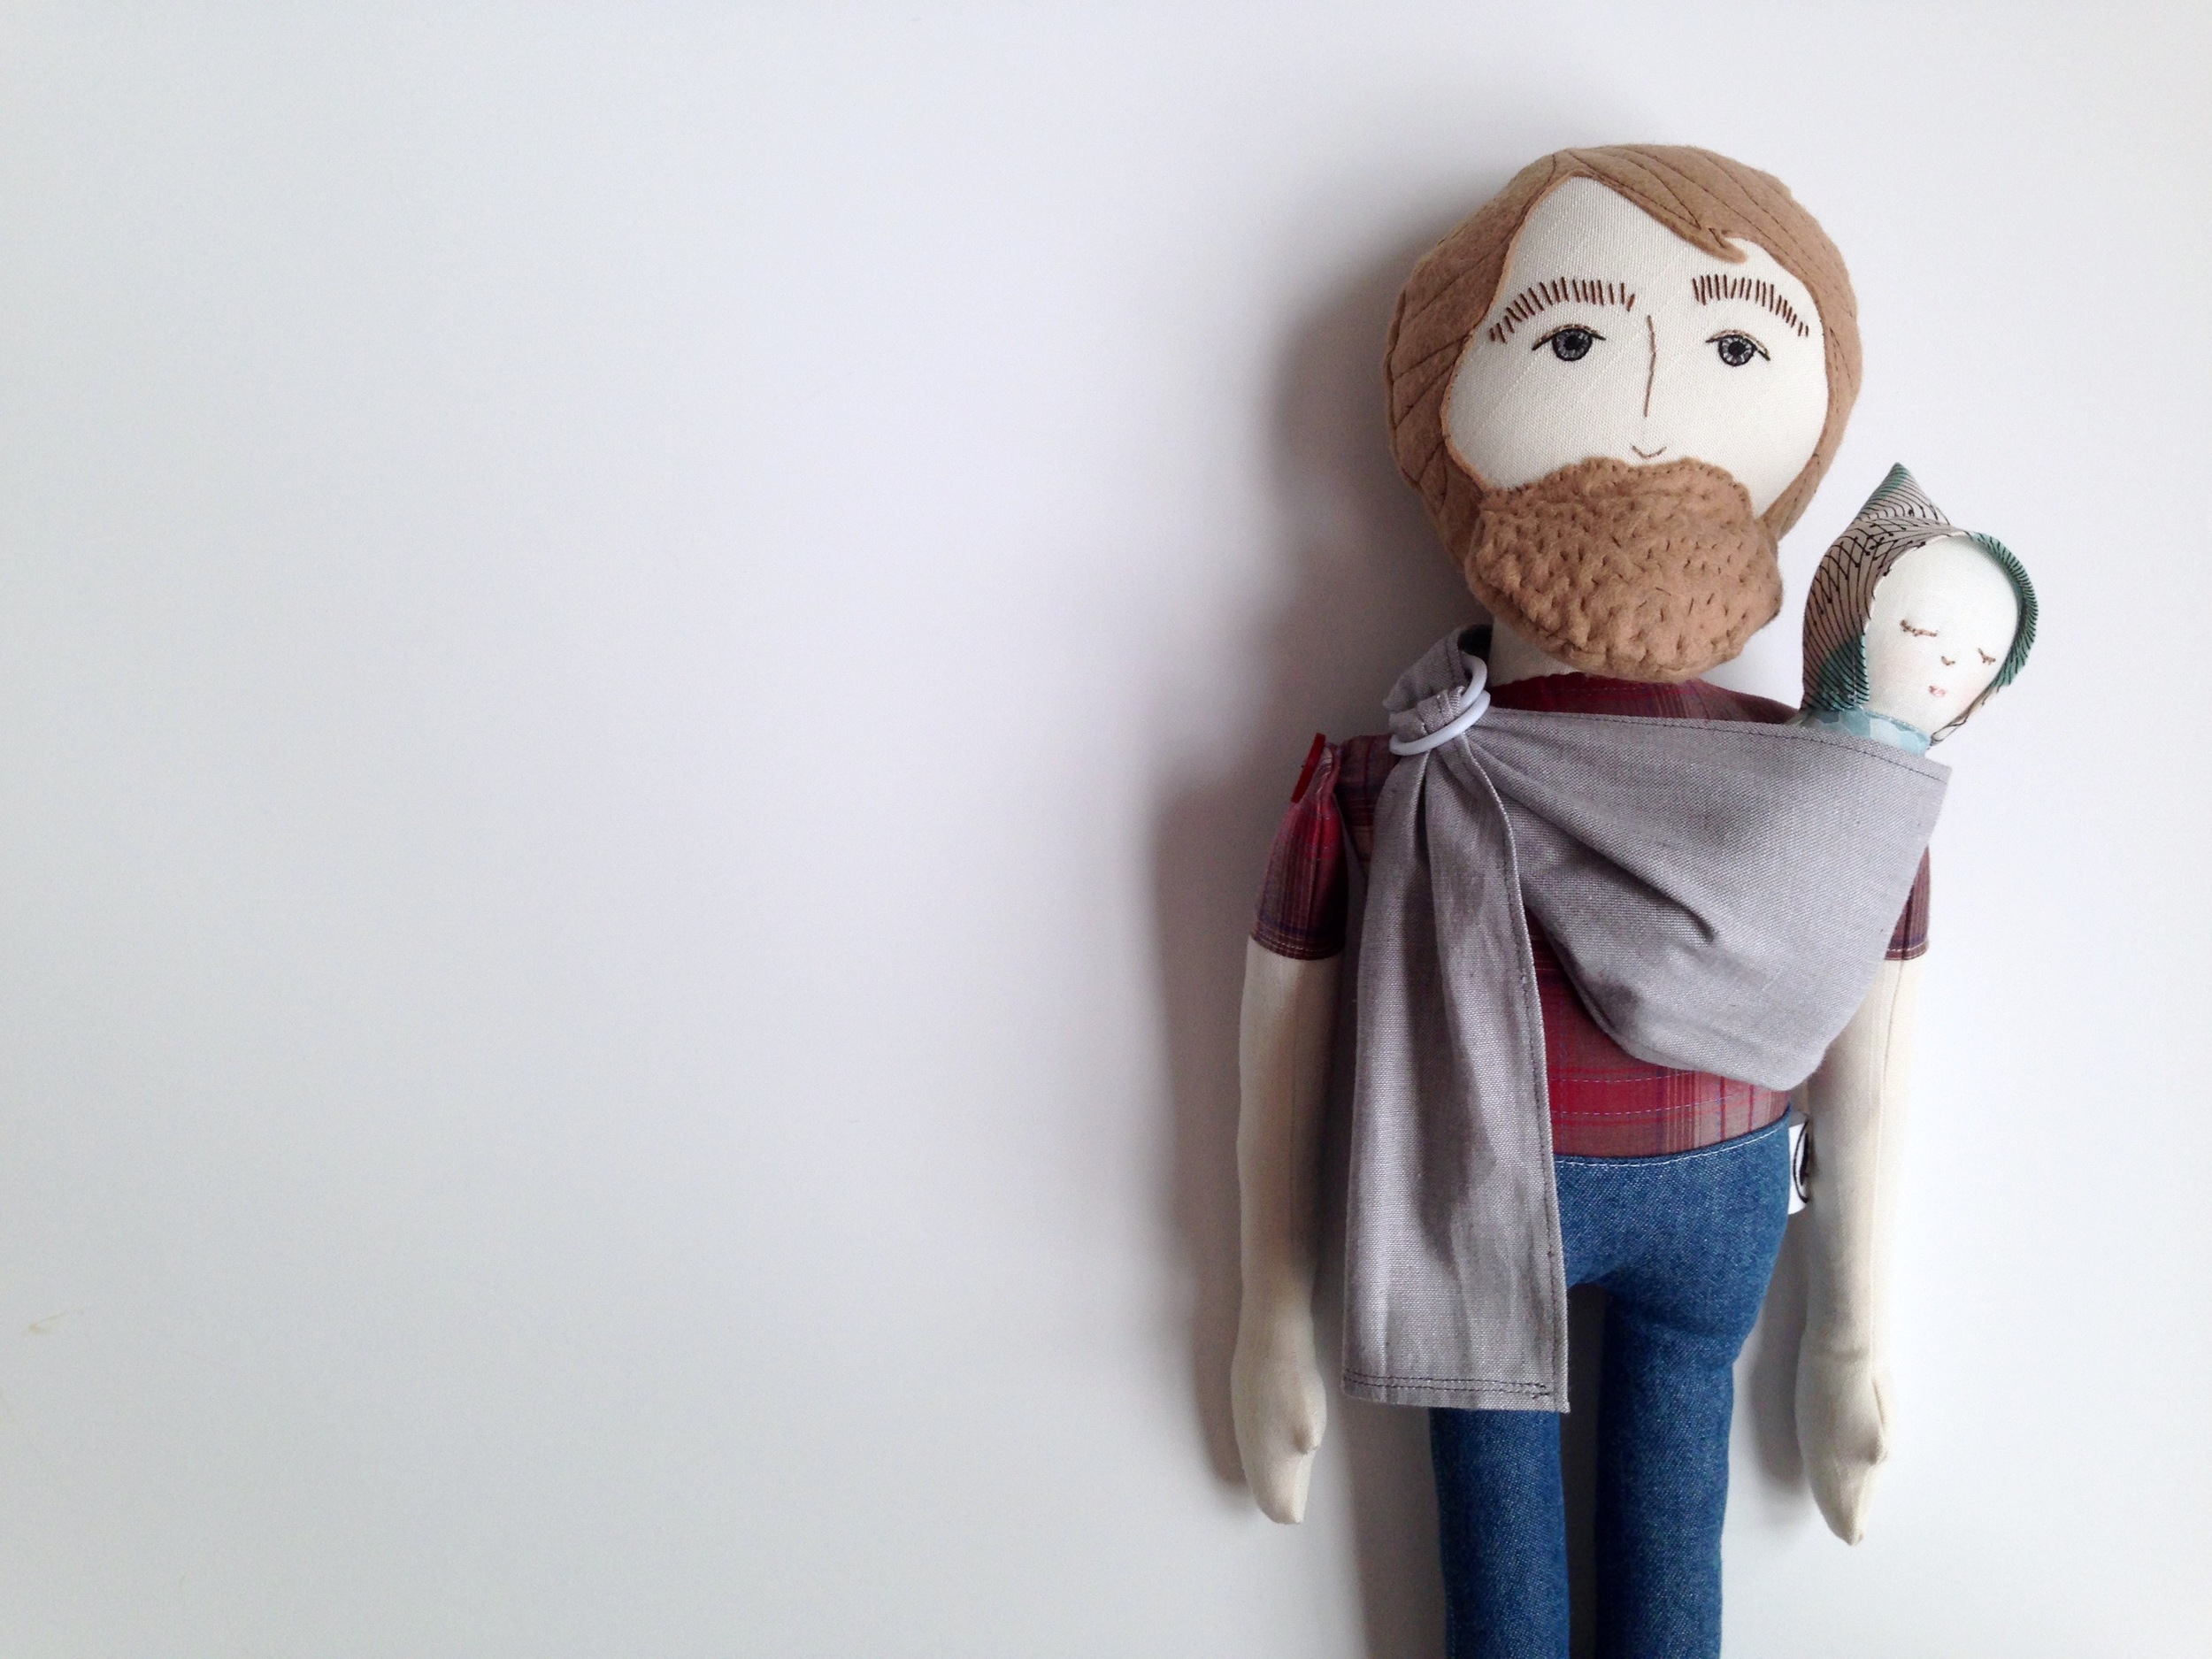 Bearded Babe in Baby Carrier